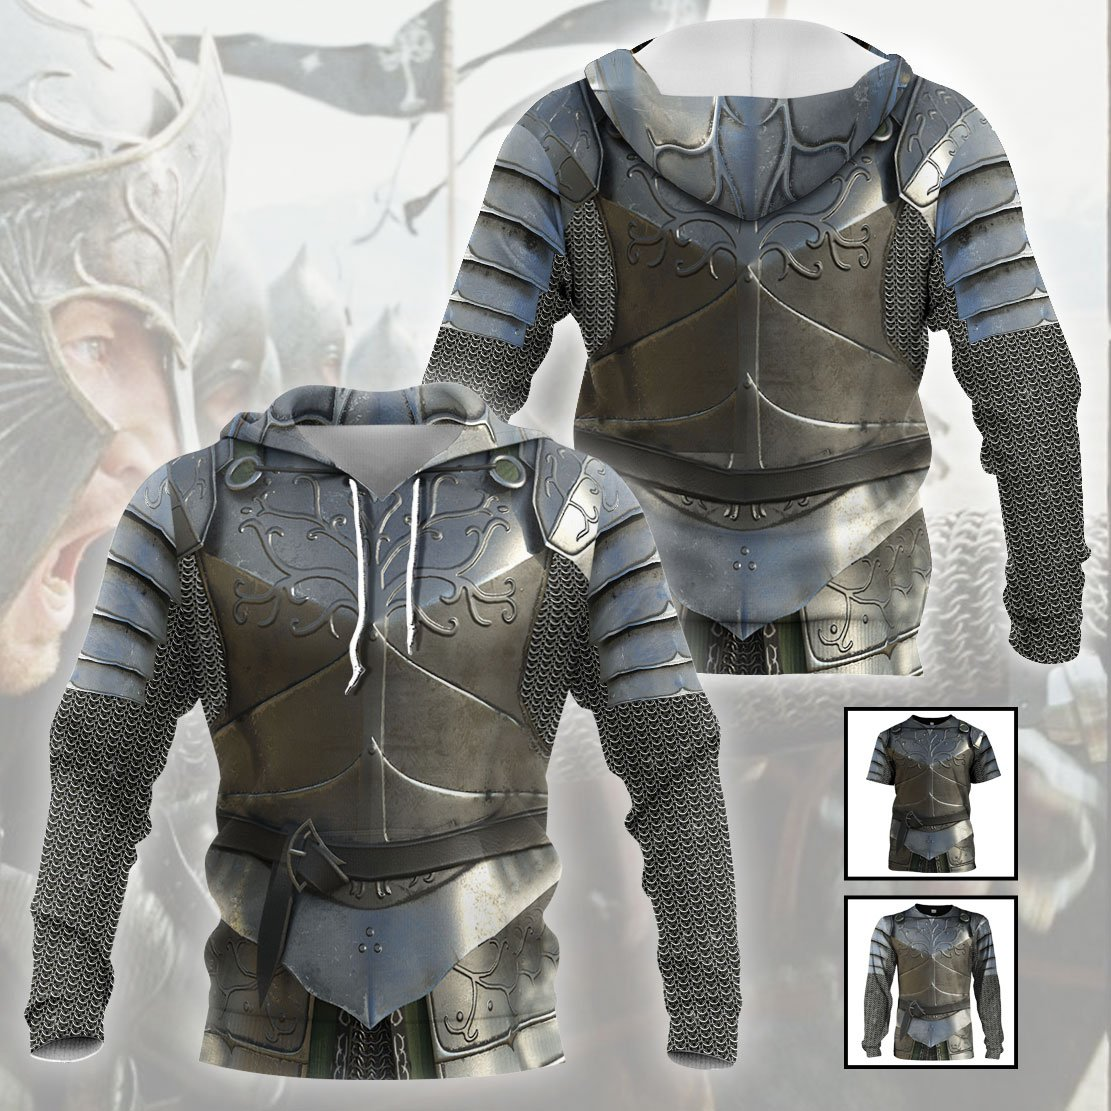 3D Fantasy Costume - The One Ring III